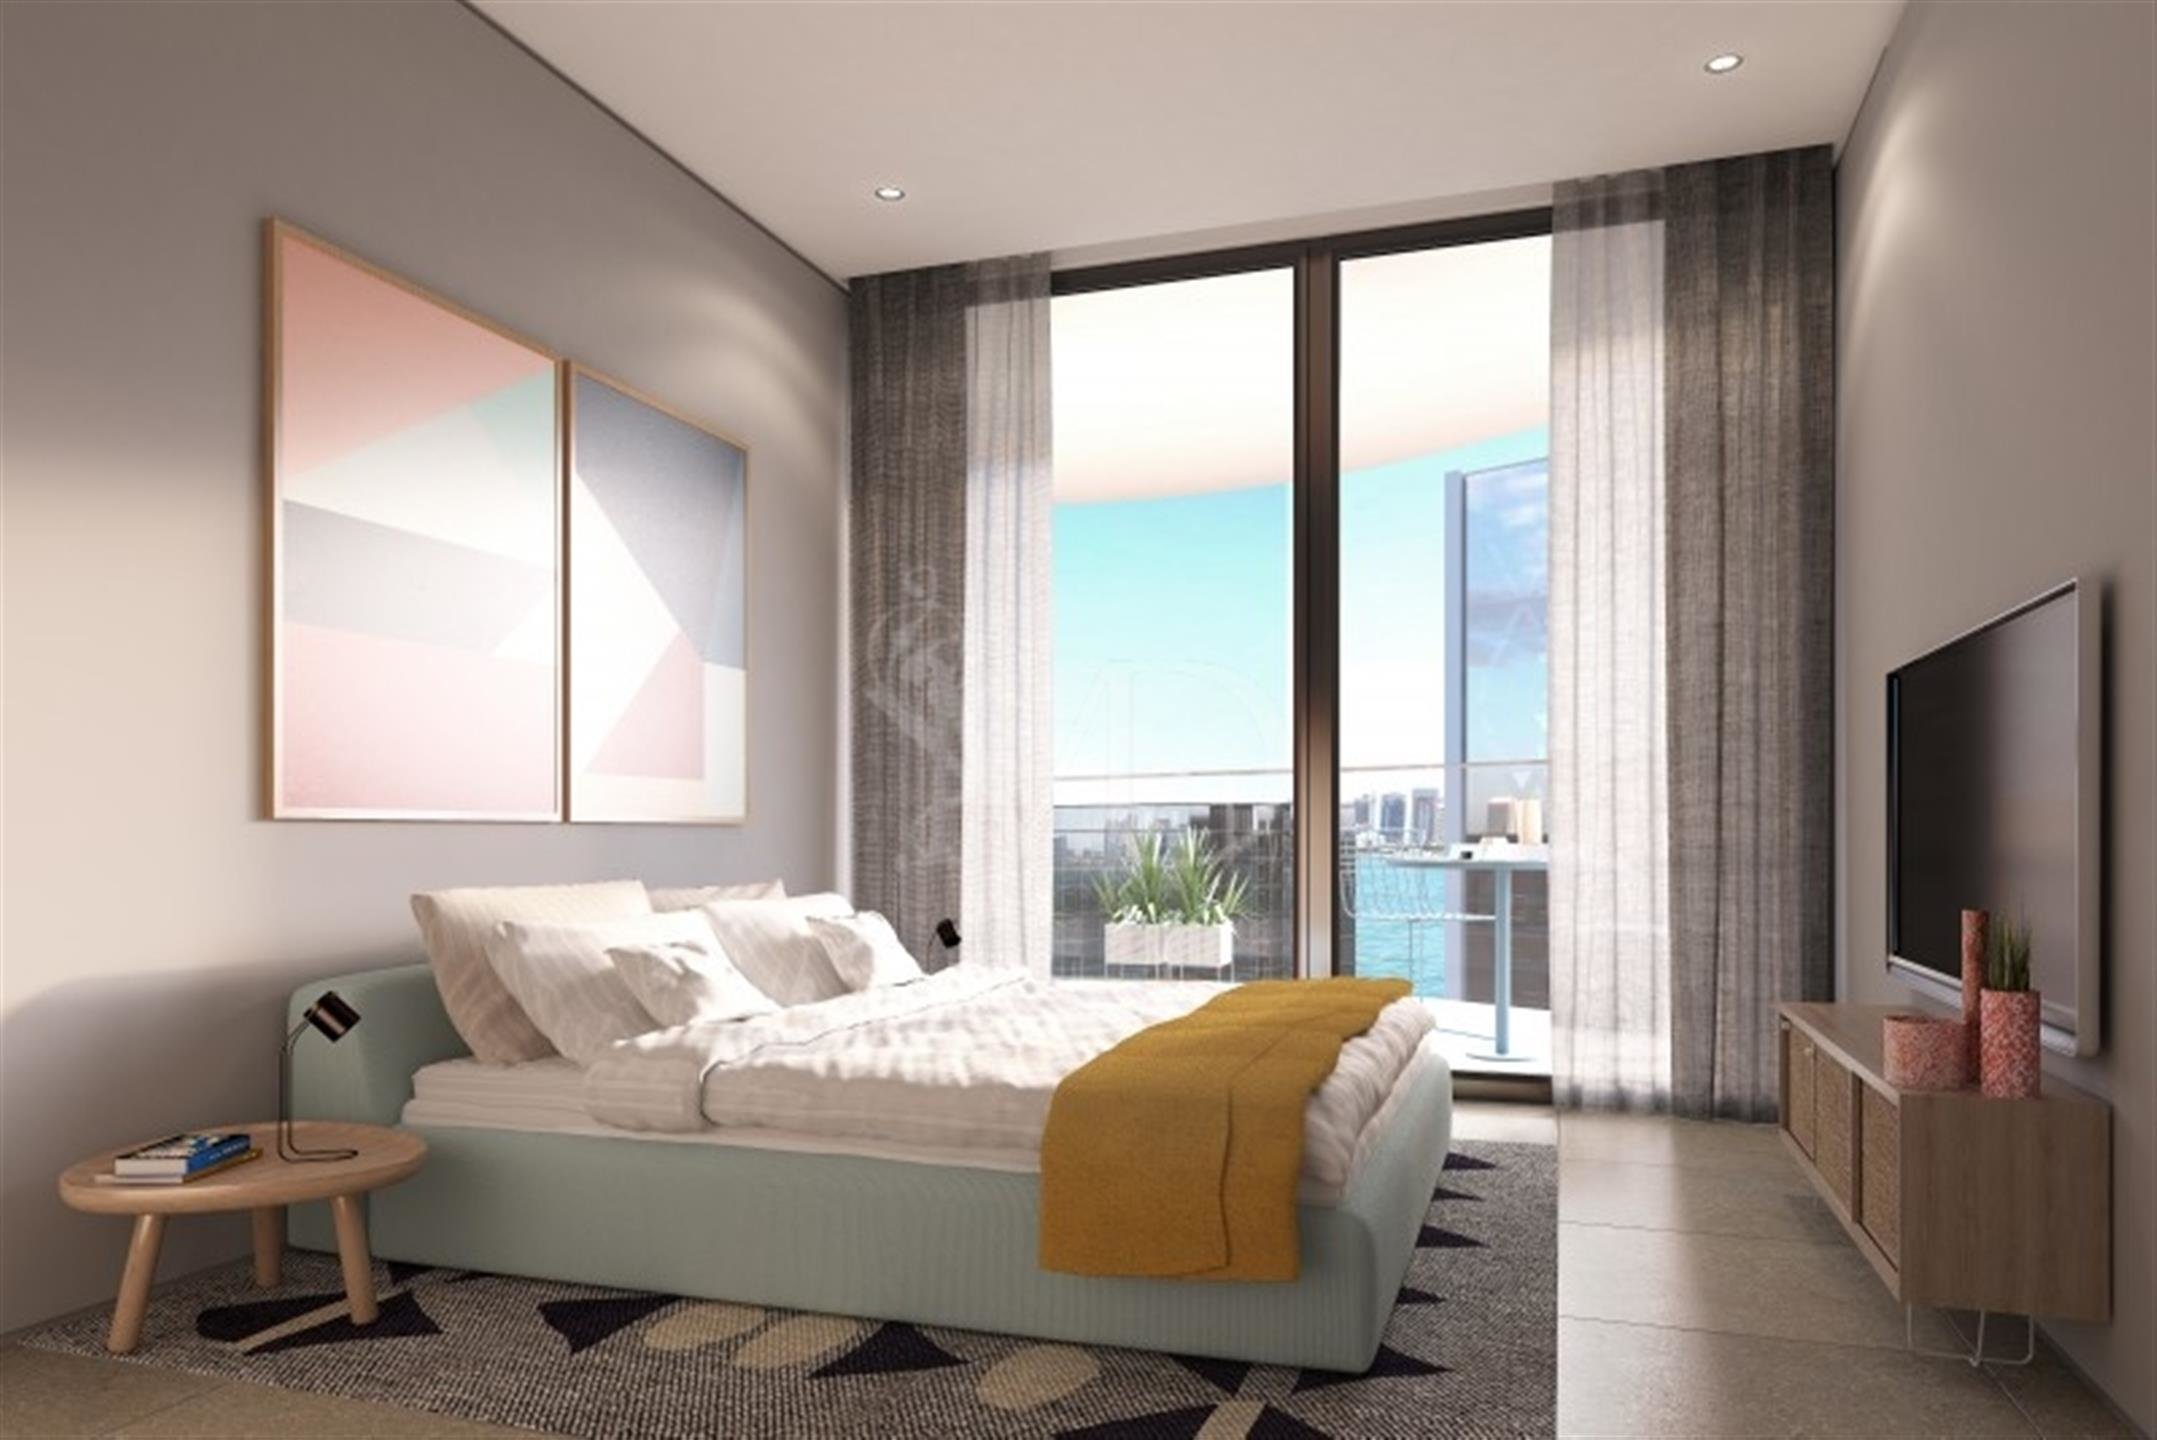 Best 1 Bedroom Apartment For Sale In Meera Shams Tower 1 Al With Pictures Original 1024 x 768